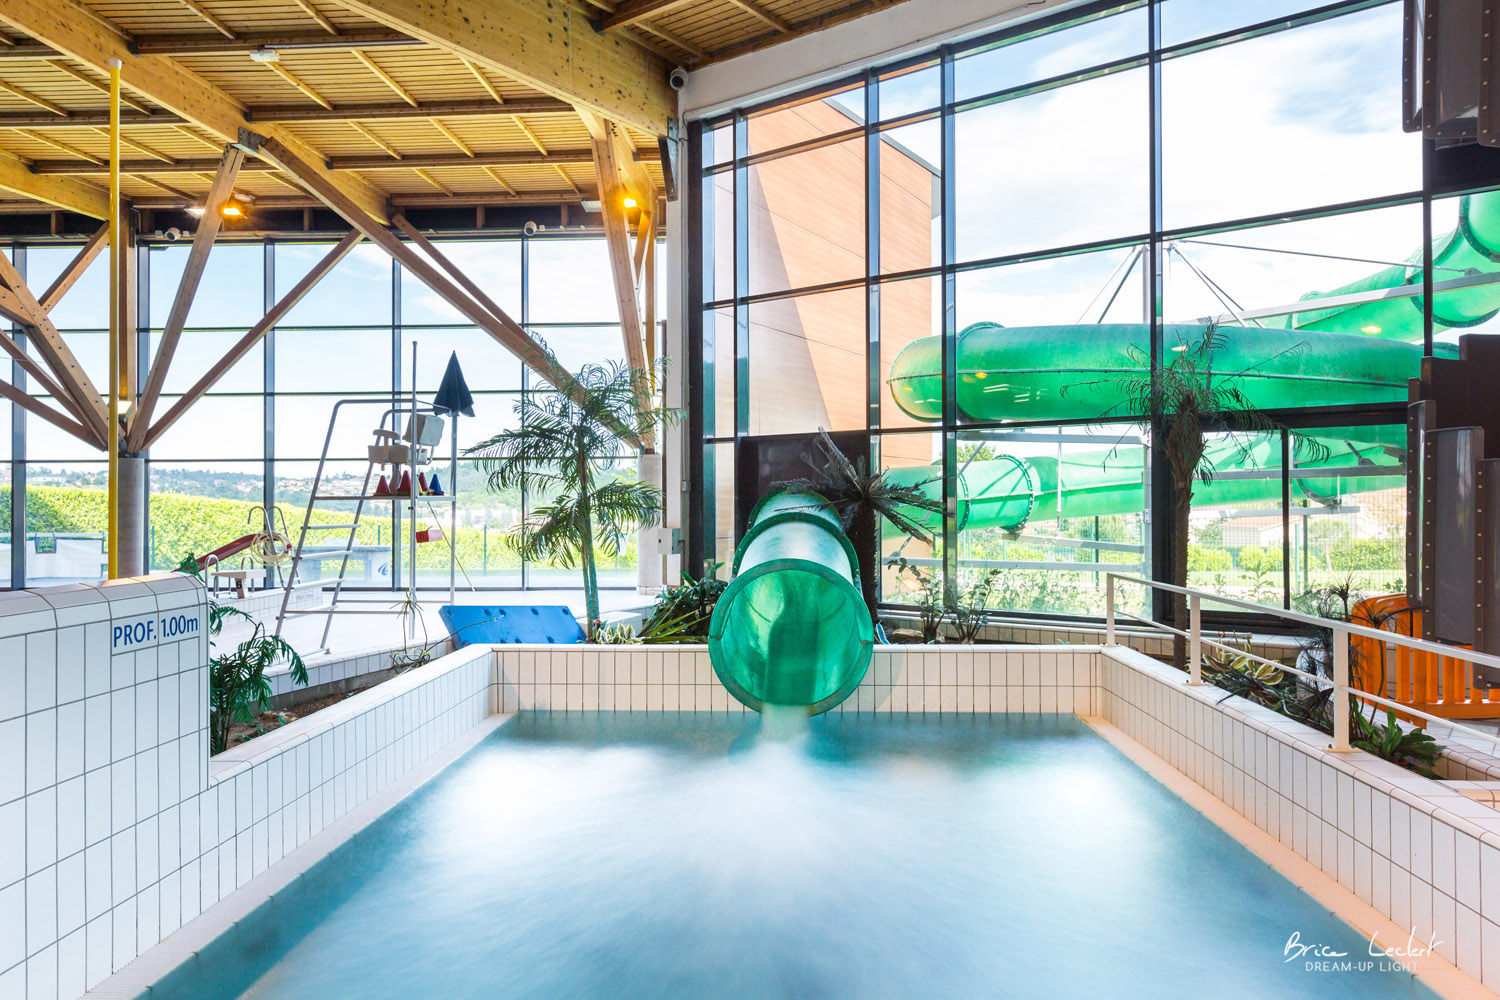 piscine-genilac-dreamuplight-photographe-immobilier-brice-leclert